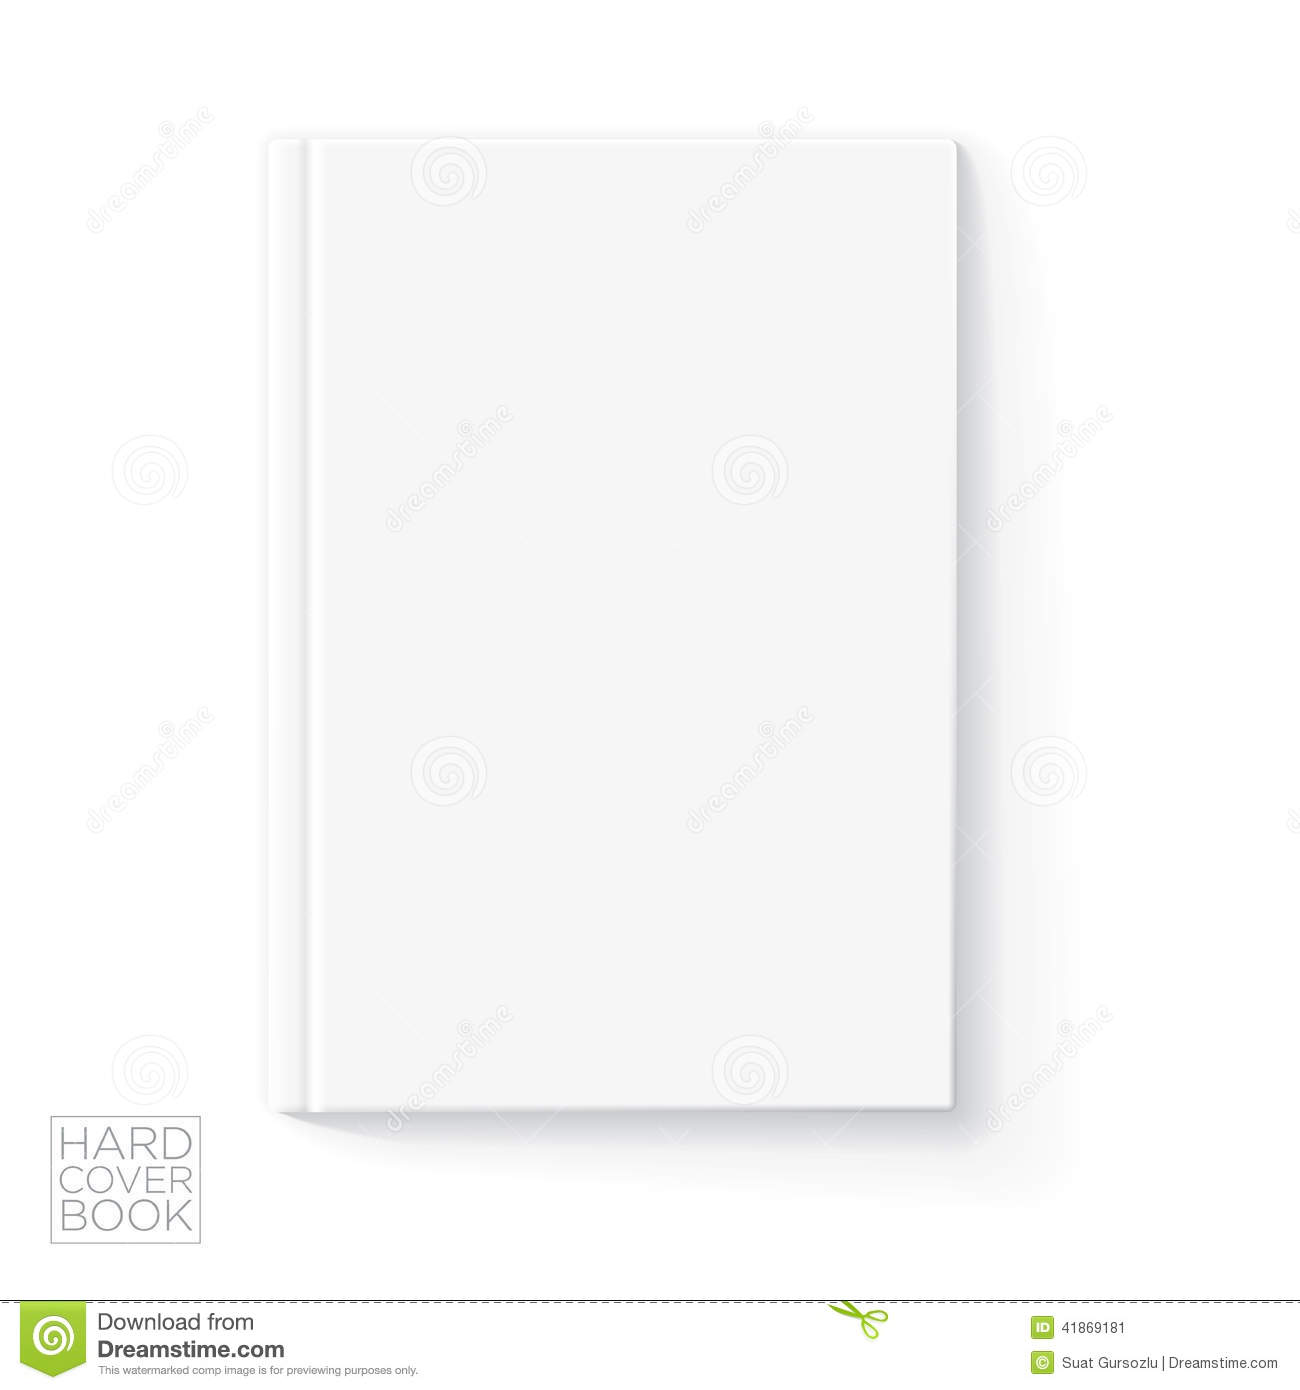 Book Cover Template Inkscape : Hard cover book stock photography cartoondealer